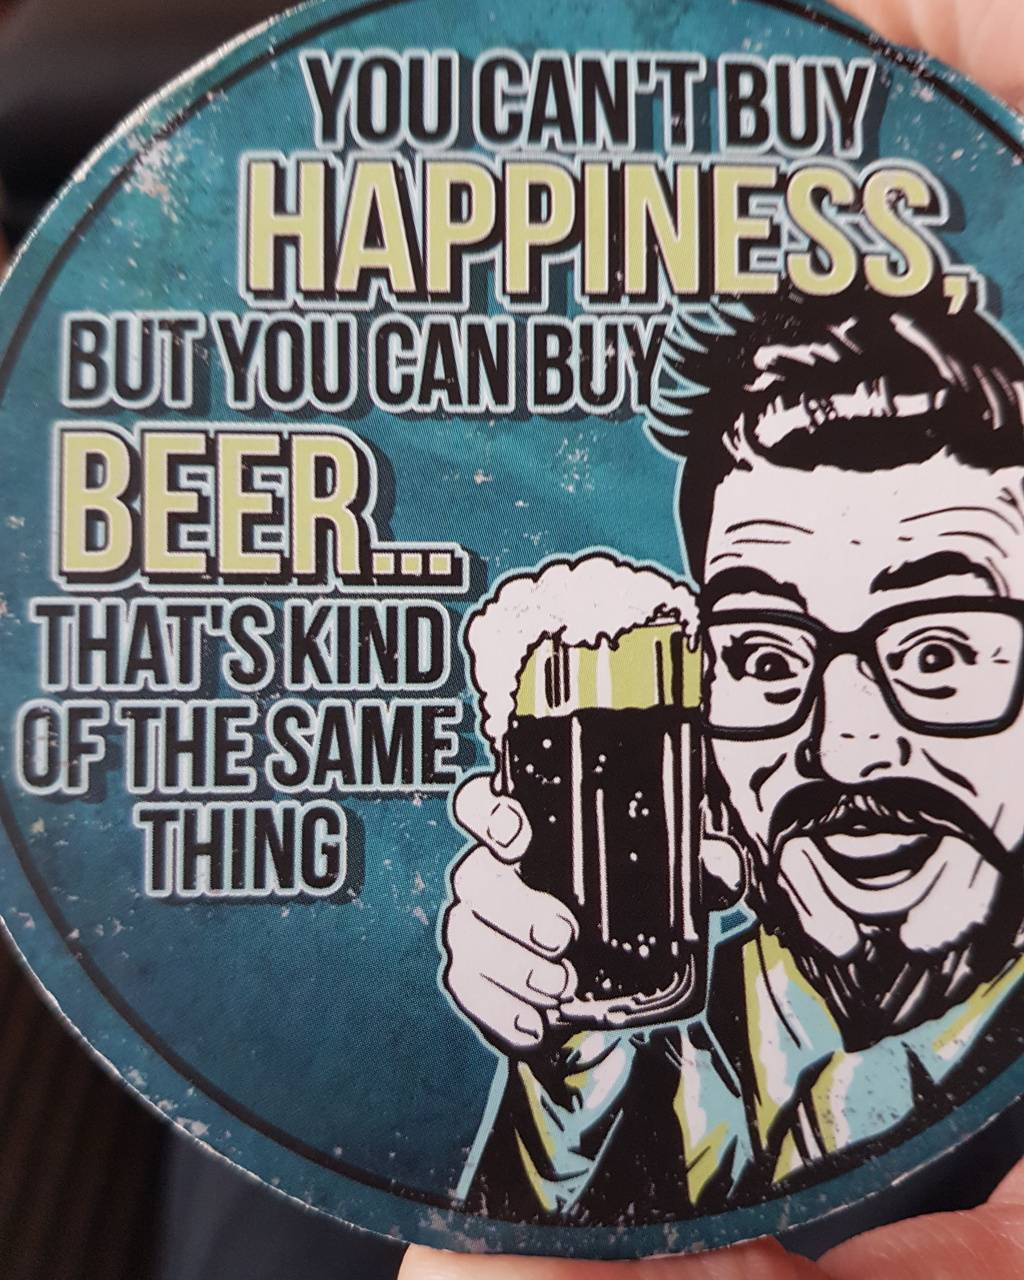 Beer happiness